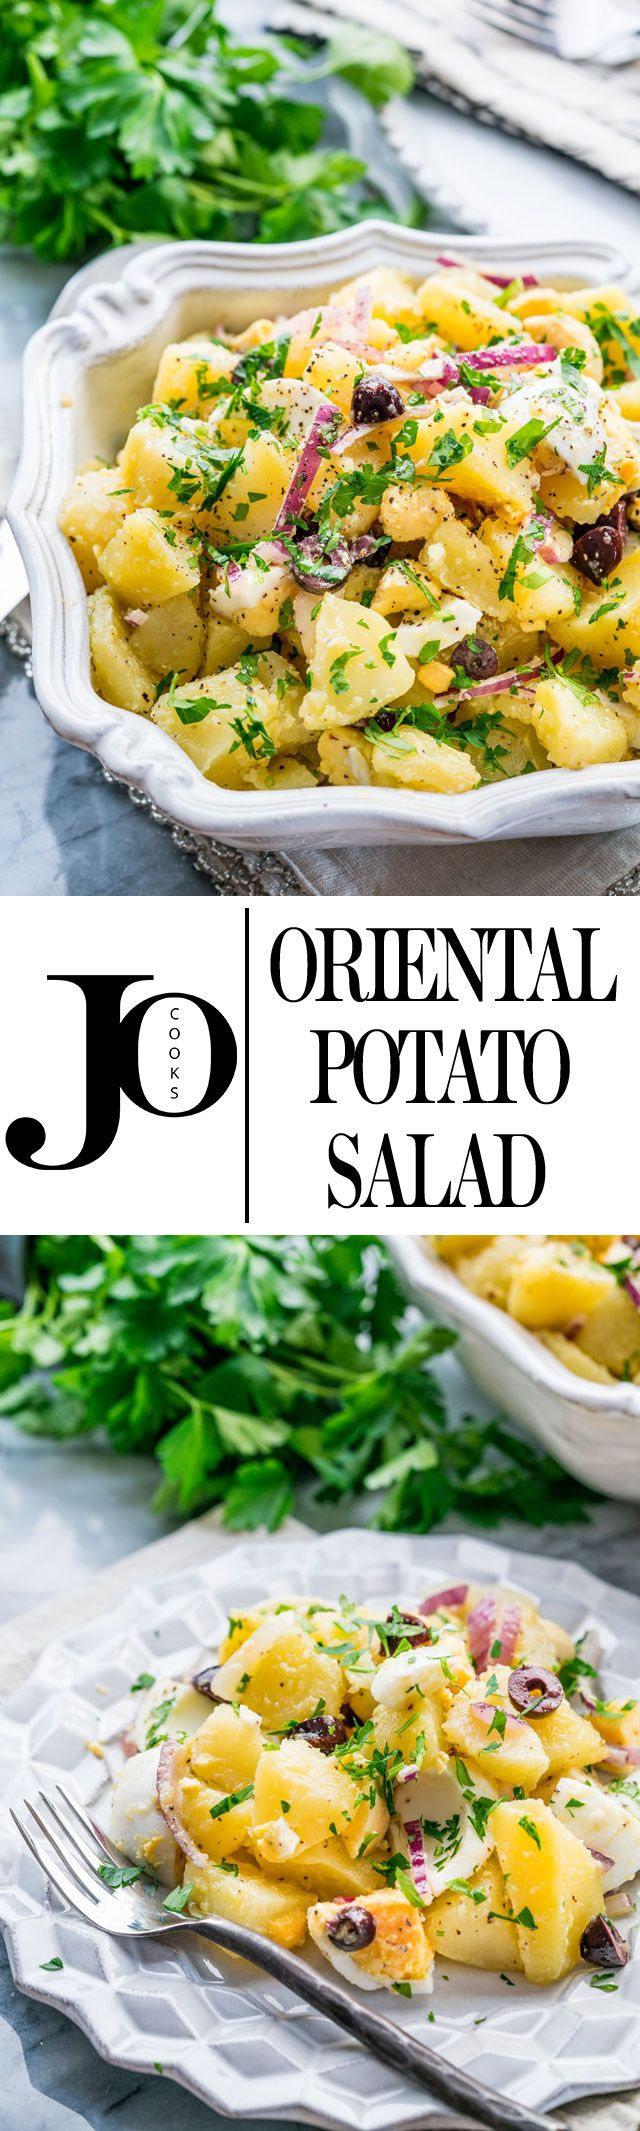 Oriental Potato Salad with olives, eggs and red onions! An easy, delicious and hearty potato salad ready in only 30 minutes!